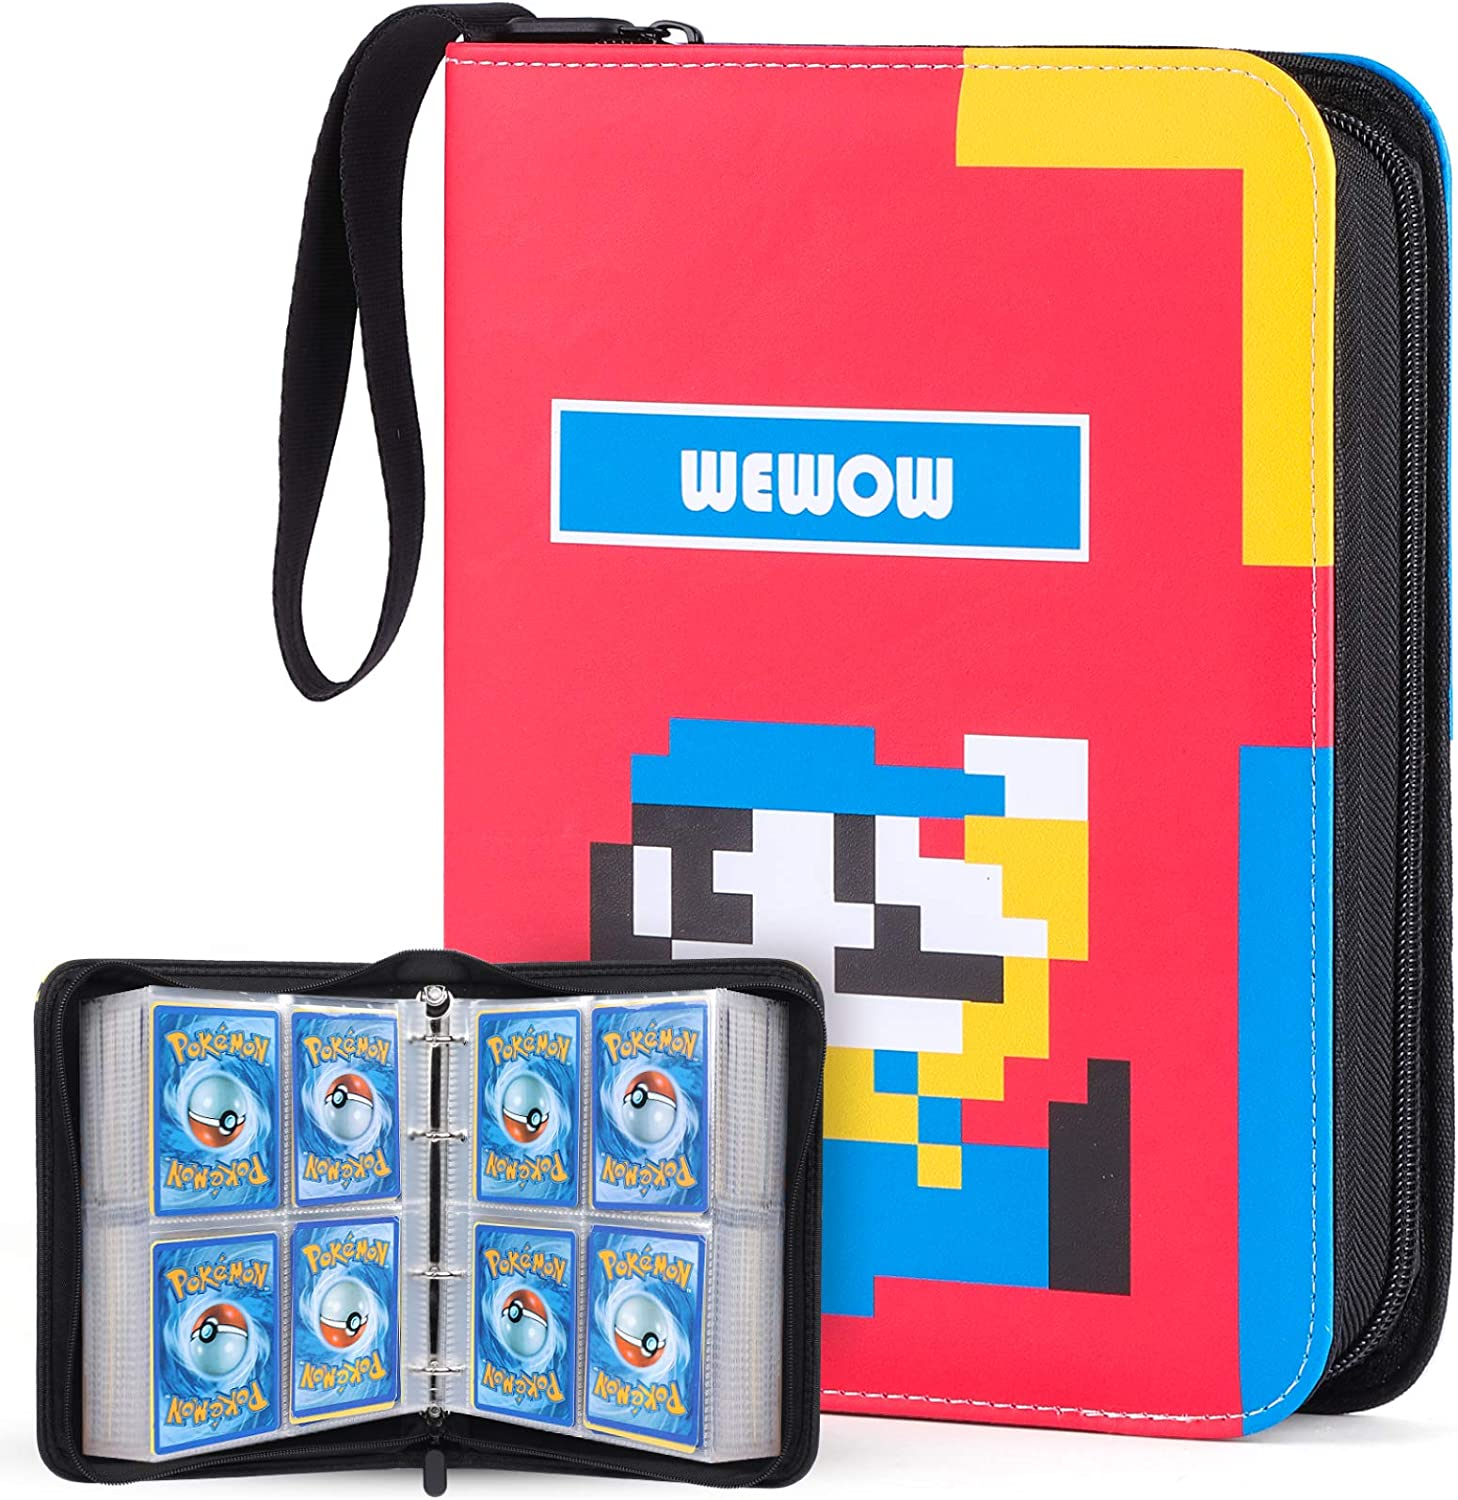 Fits 400 Cards Sleeves with 50 Premium Removable Sheets WEWOW 4-Pocket Card Binder Holder Card Collector Album with Zipper for Basebal Cards Trading Card Case Compatible with Pokemon Card Packs